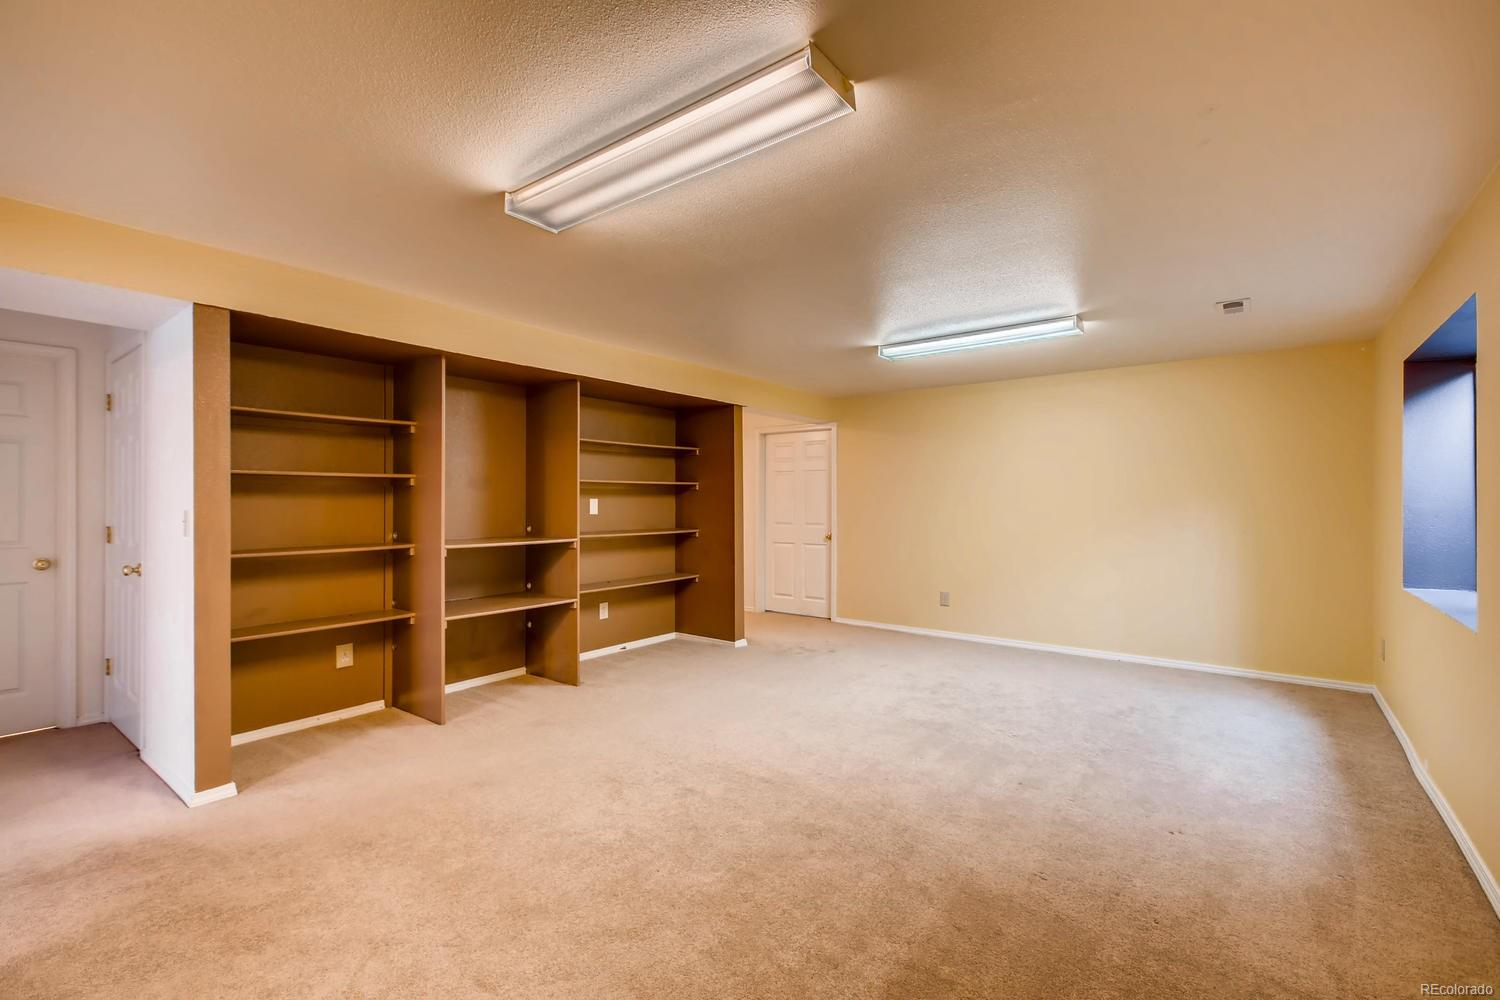 Large basement family room with built-in shelving